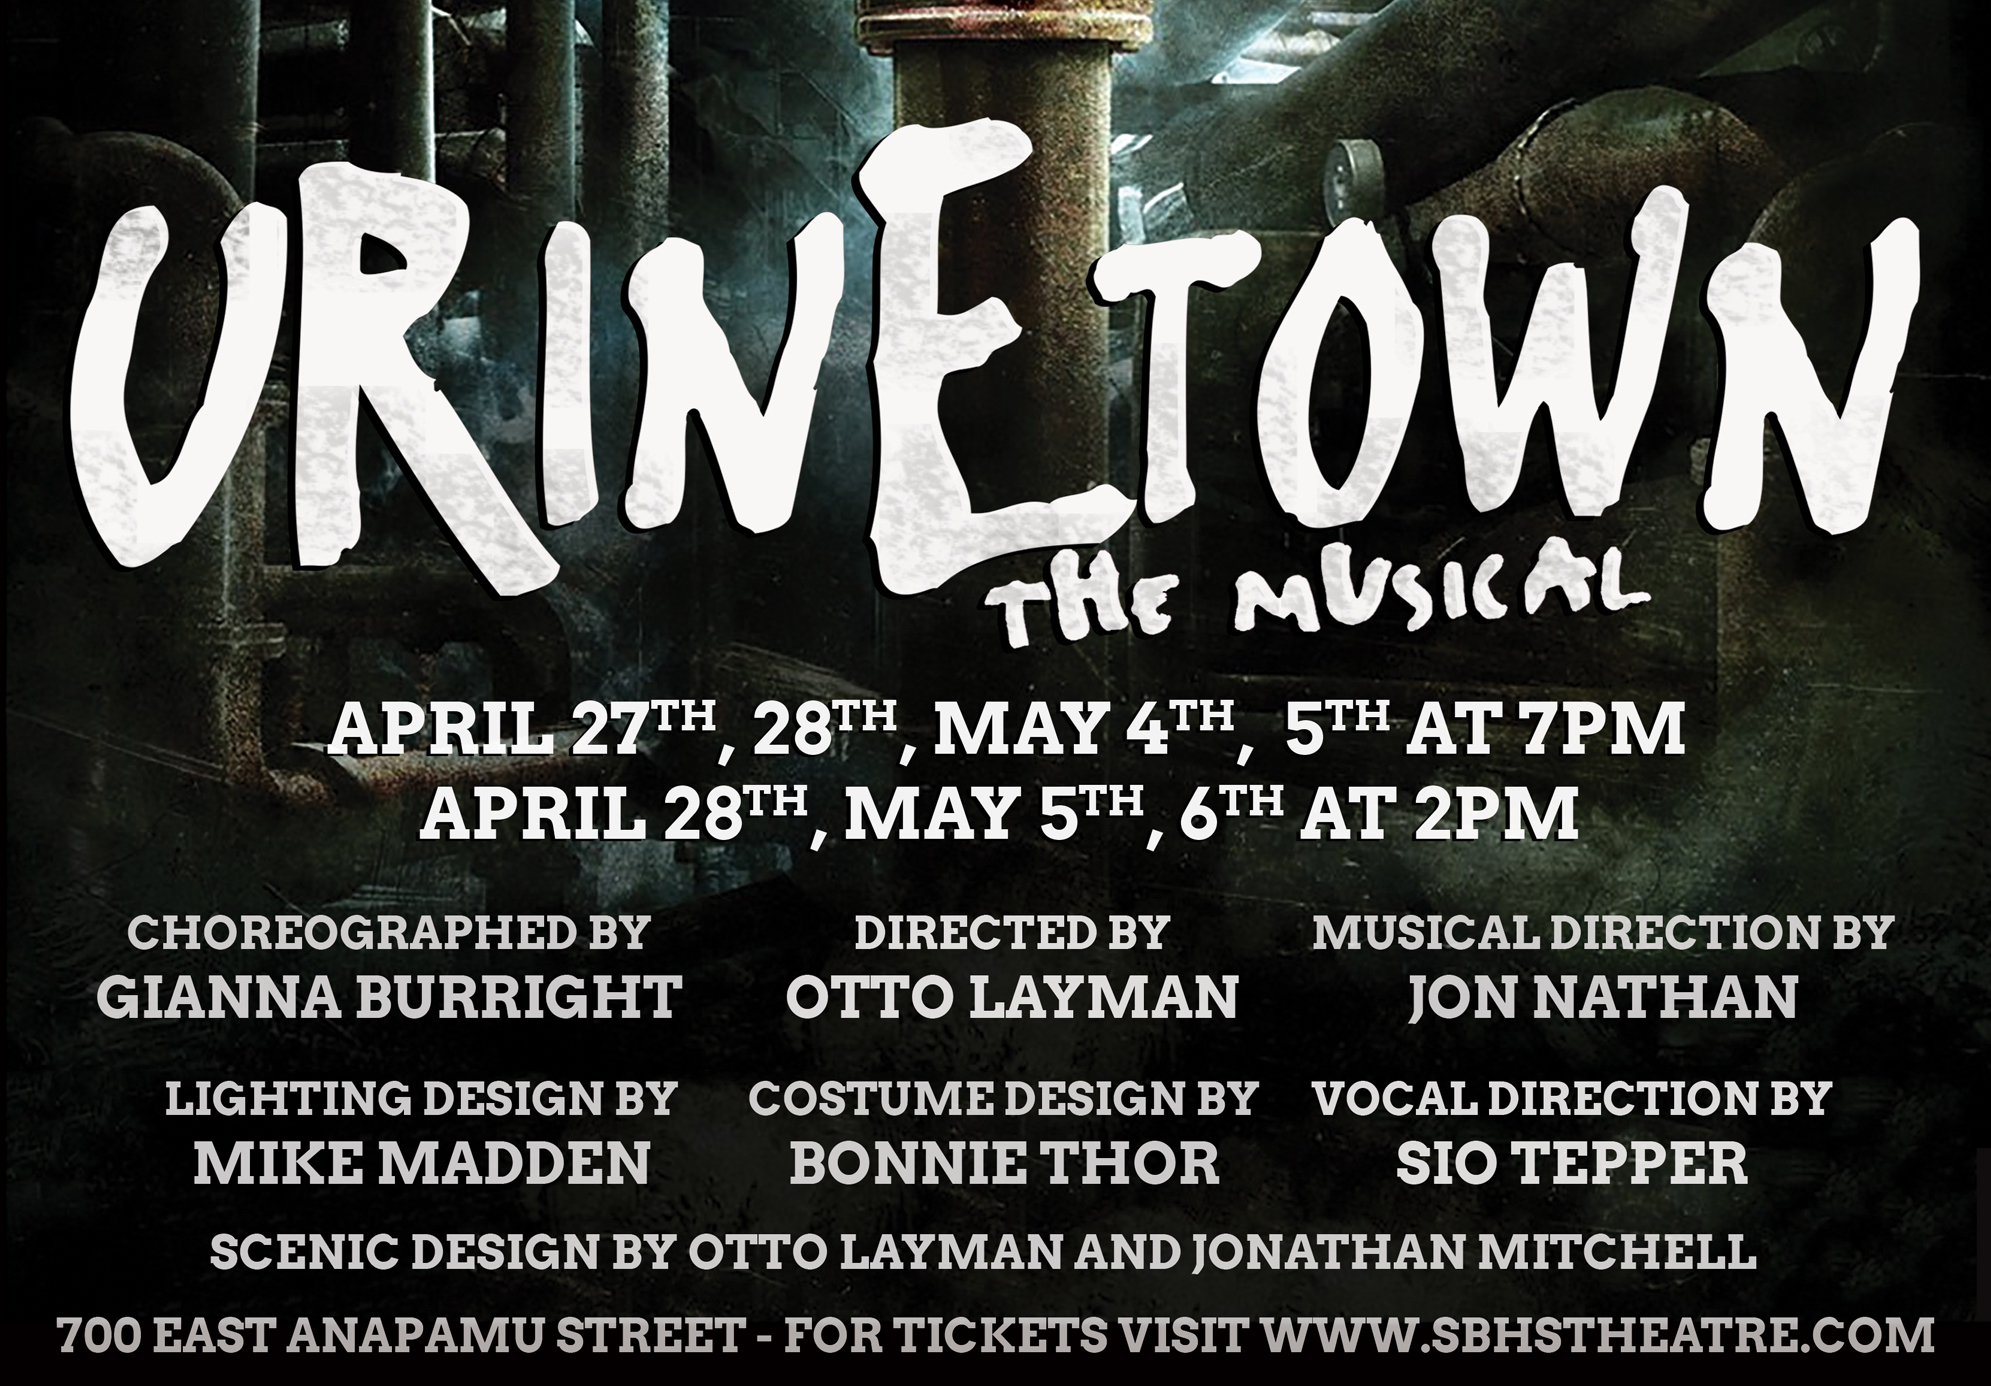 URINETOWN, The Musical at SBHS Theatre